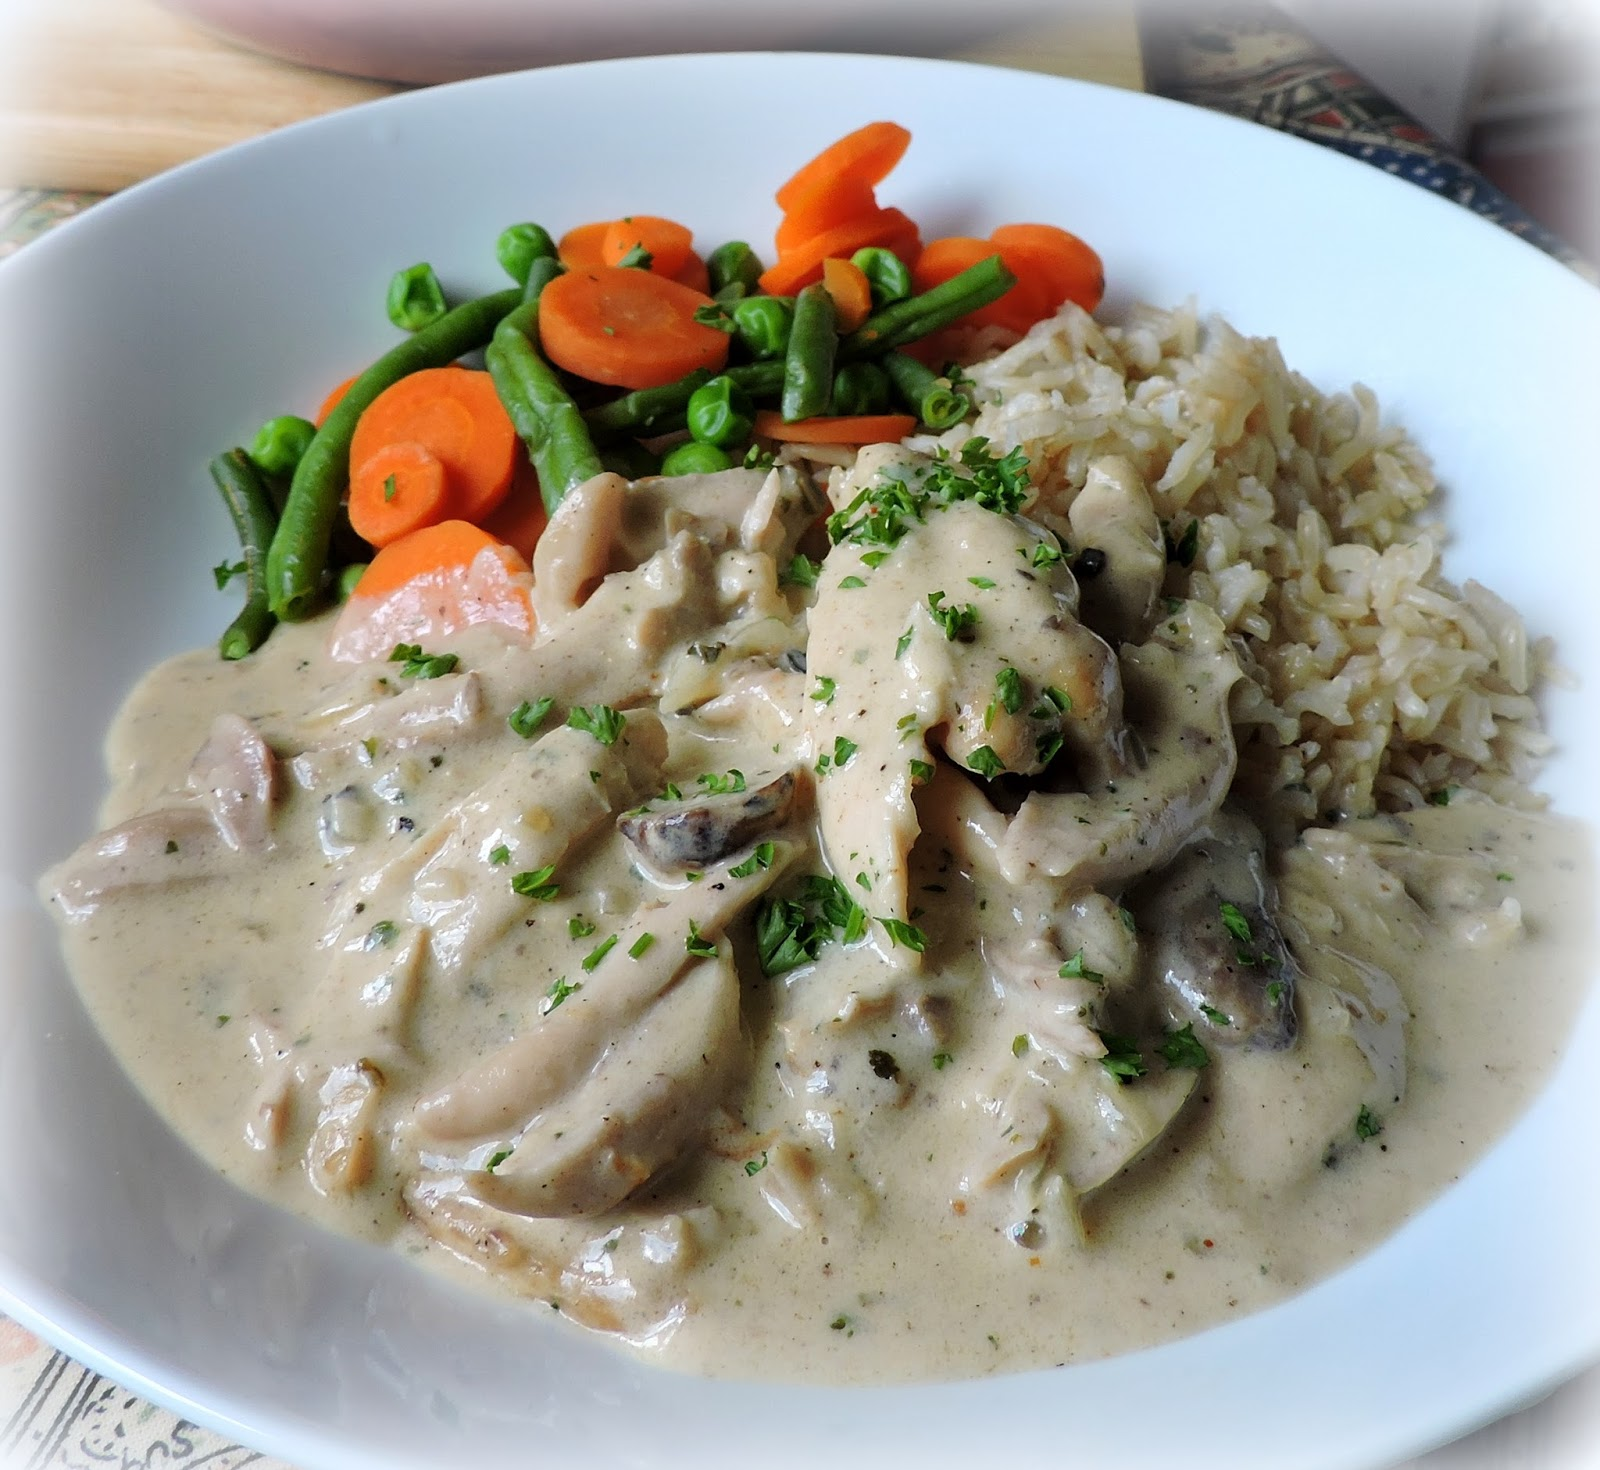 Fricassee - what is this dish and how to cook it 83